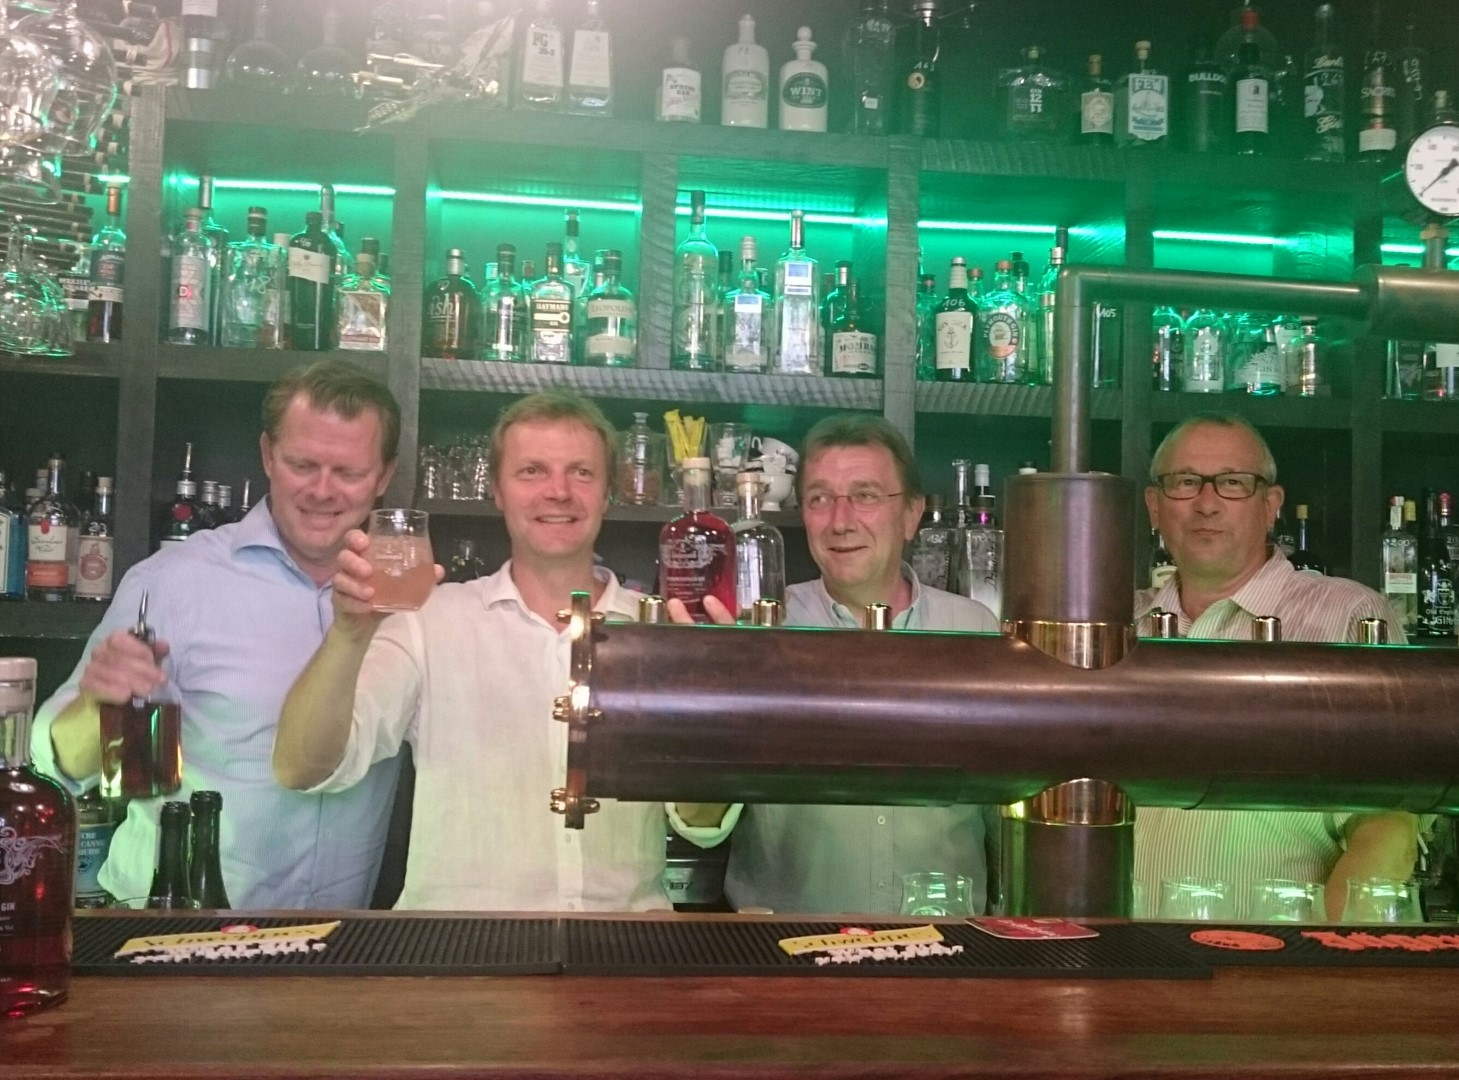 instigators of the evening were, from left, Manuel Wouters, Dirk Lindemans, Patrick Van Schandevijl from Stokerij De Moor and Maurits Van Den Eynde